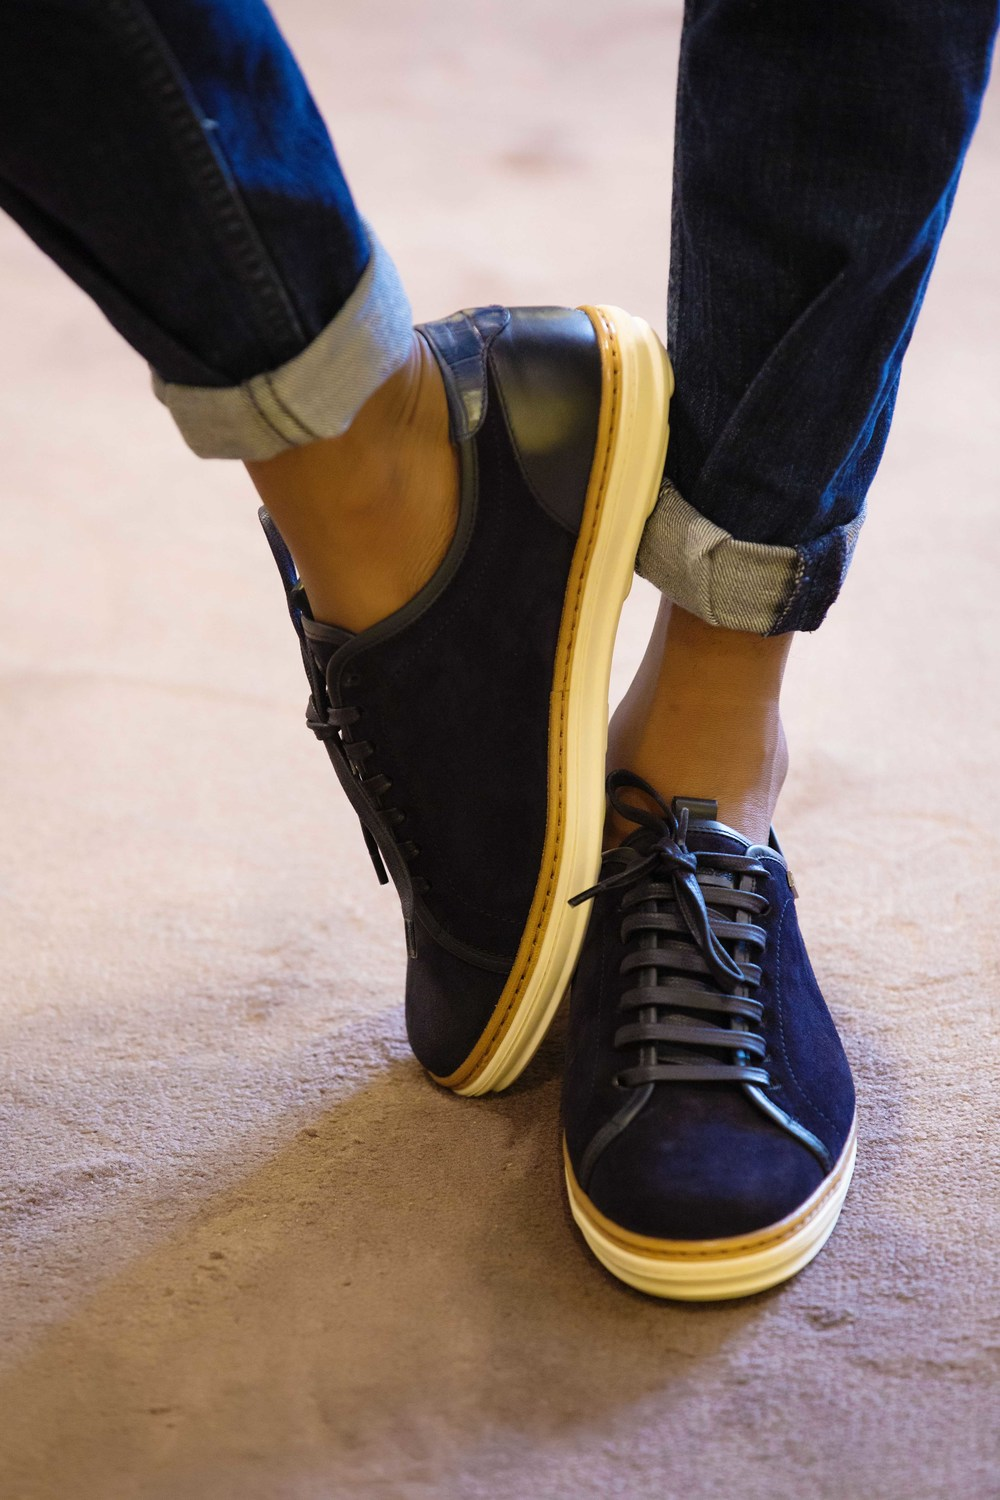 Navy Blue Suede Sneakers with Leather Laces: Ermenegildo Zegna